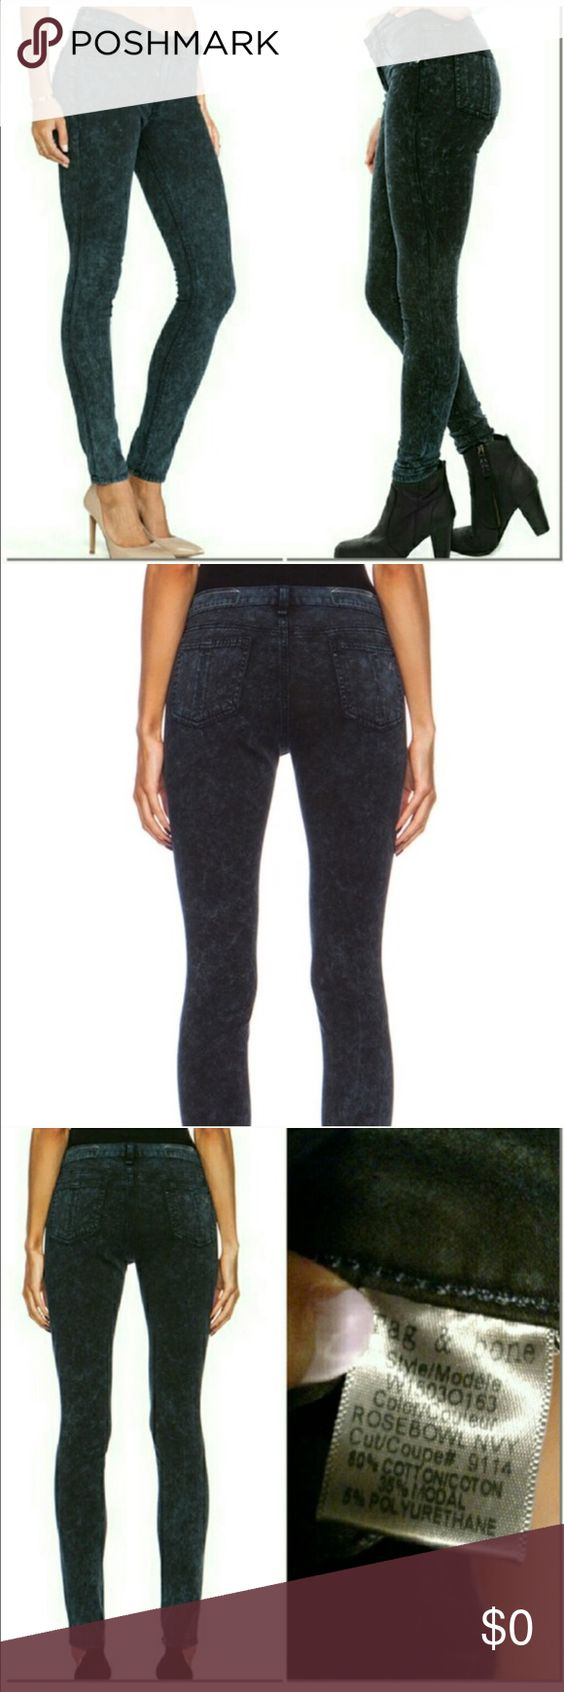 "{Rag & Bone} Rosebowl Jean Rag & Bone Super Stretch High Waist Jegging Jean.                                                             Details & Care Pliant stretch cotton sculpts a pair of super-svelte faded black skinnies styled with a vintage-sleek high-rise waist. 30"" inseam; 10"" leg opening; 11"" front rise; 14"" back rise (size 29). Zip fly with button closure. Faux front pockets; coin pocket; back patch pockets. 60% cotton, 35% modal, 5% polyurethane. Machine wash cold, dry flat. rag…"